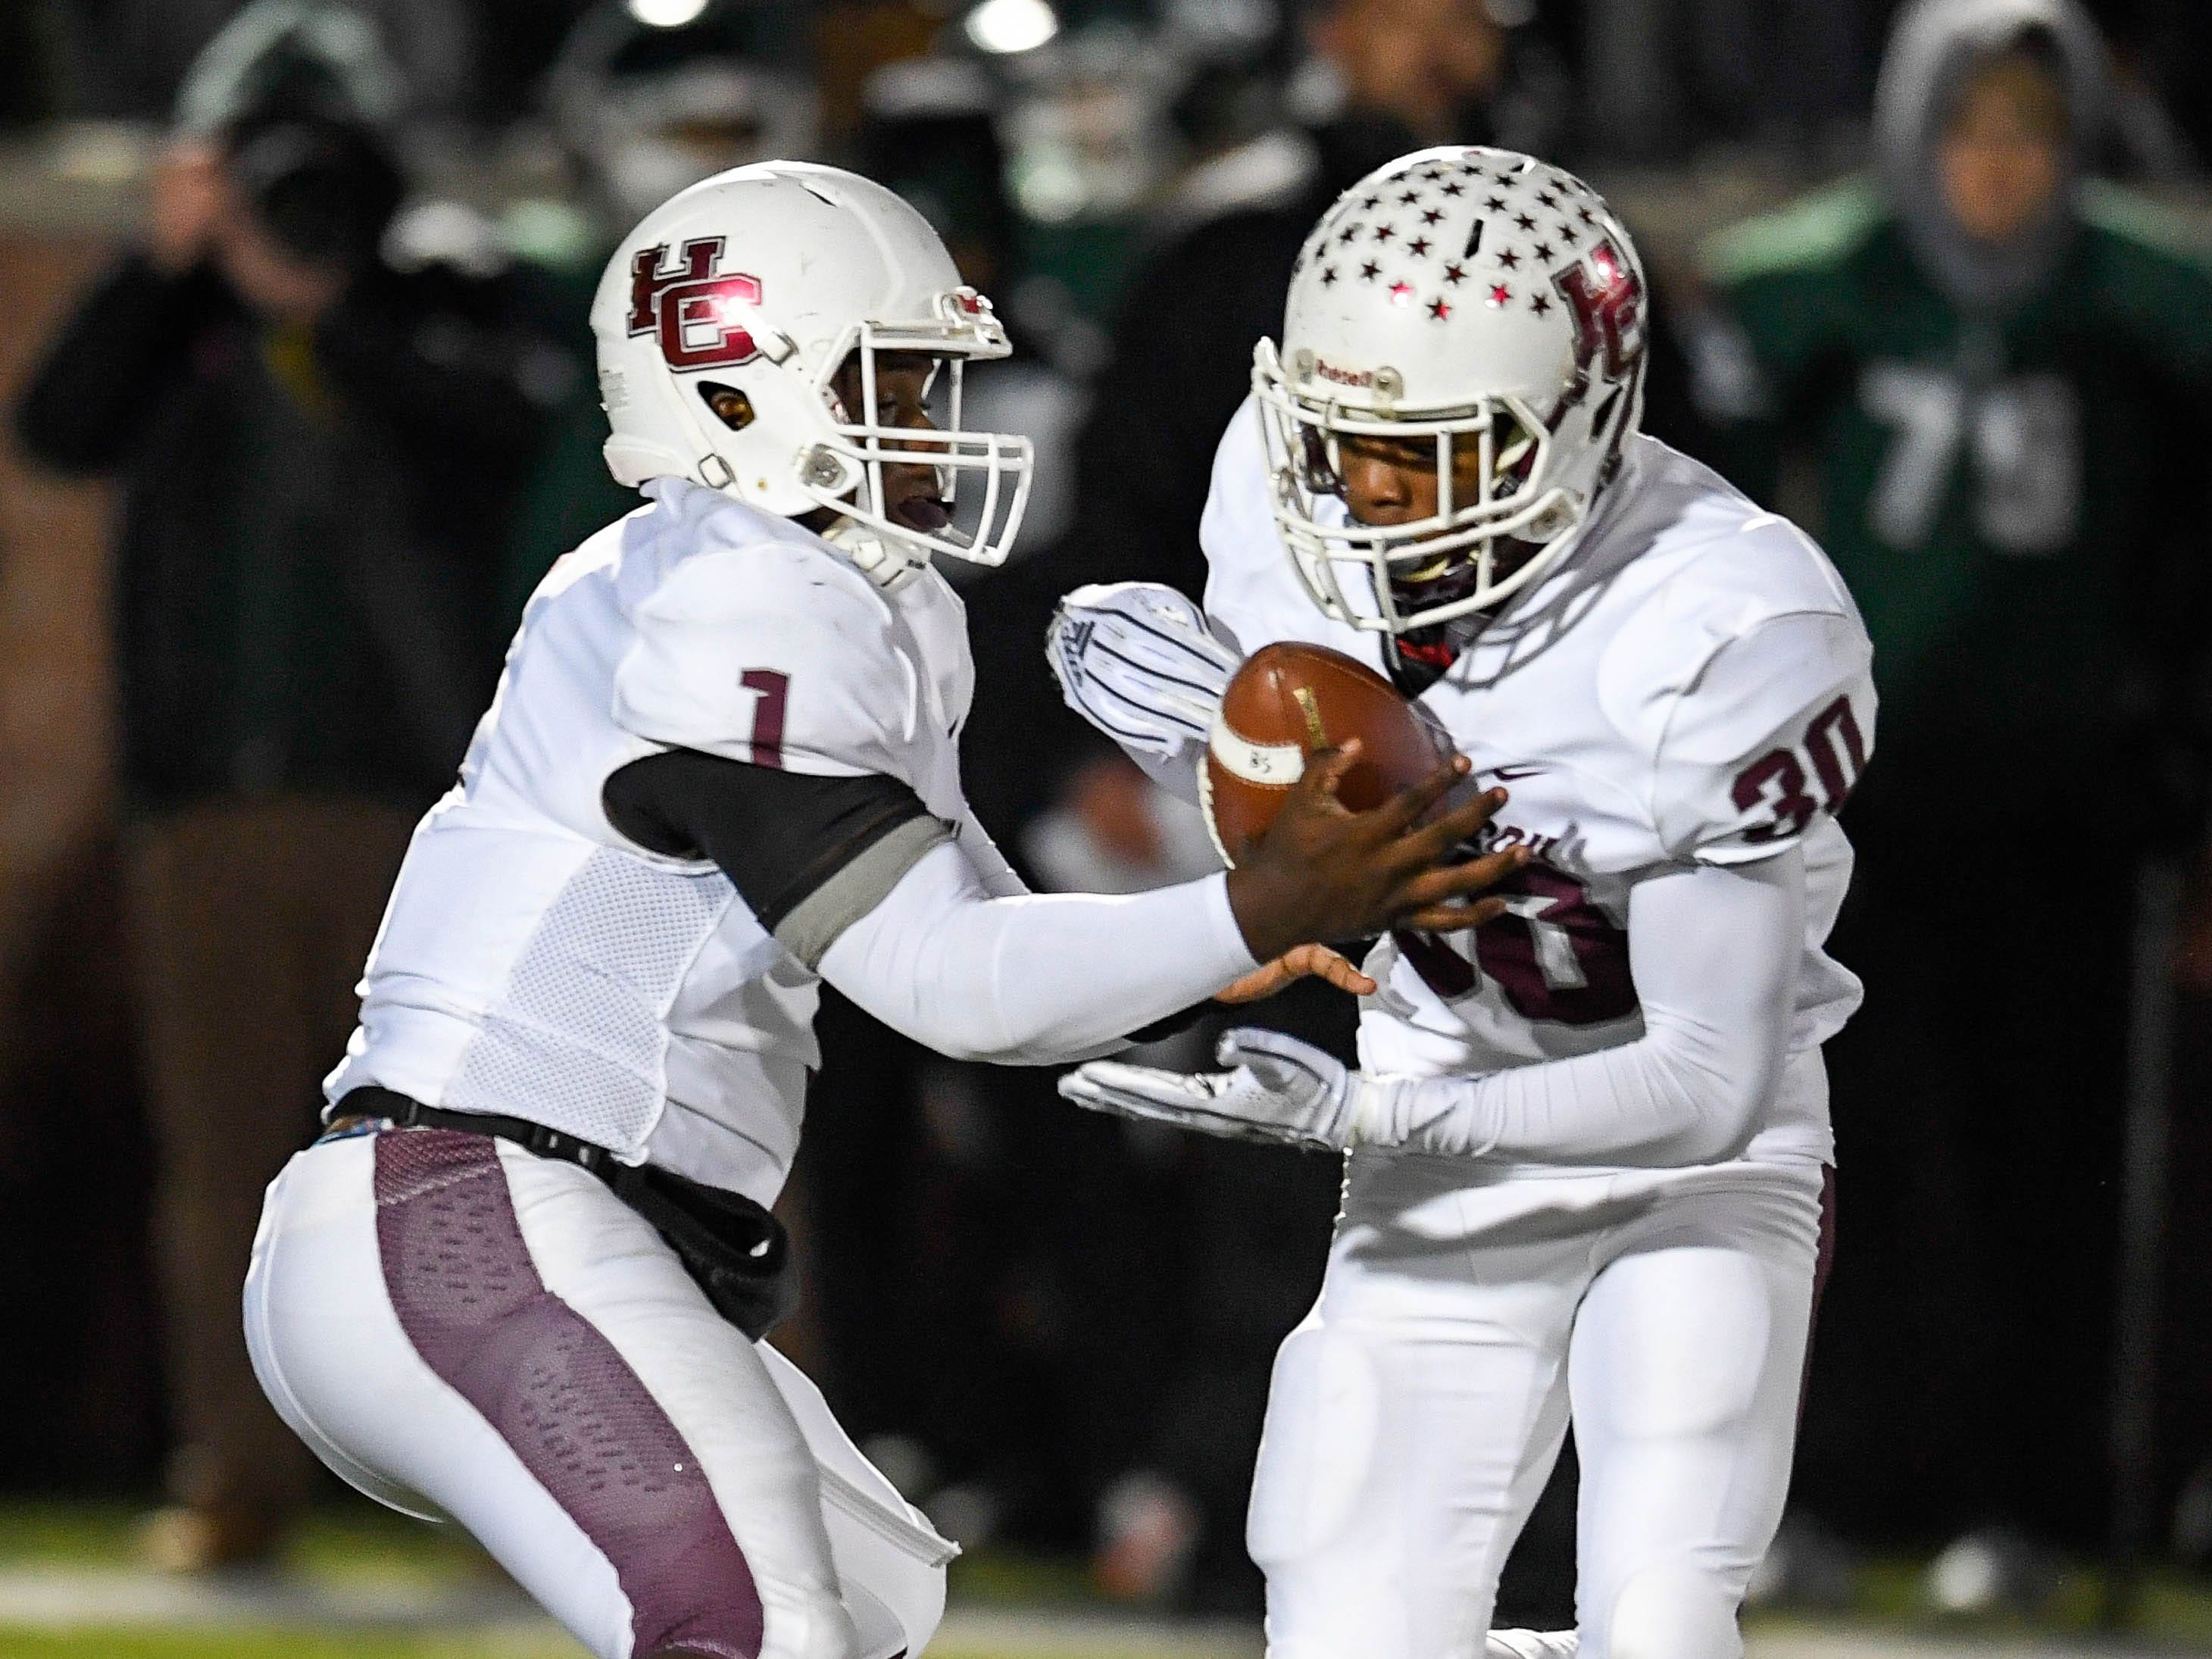 Henderson quarterback Skip Patterson (1) hands off to Henderson's Isaiah Easley (30) as the Henderson County Colonels play the Trinity Shamrocks in the second round of the Class 6-A football playoffs at Marshall Stadium in Louisville Friday, November 9, 2018.